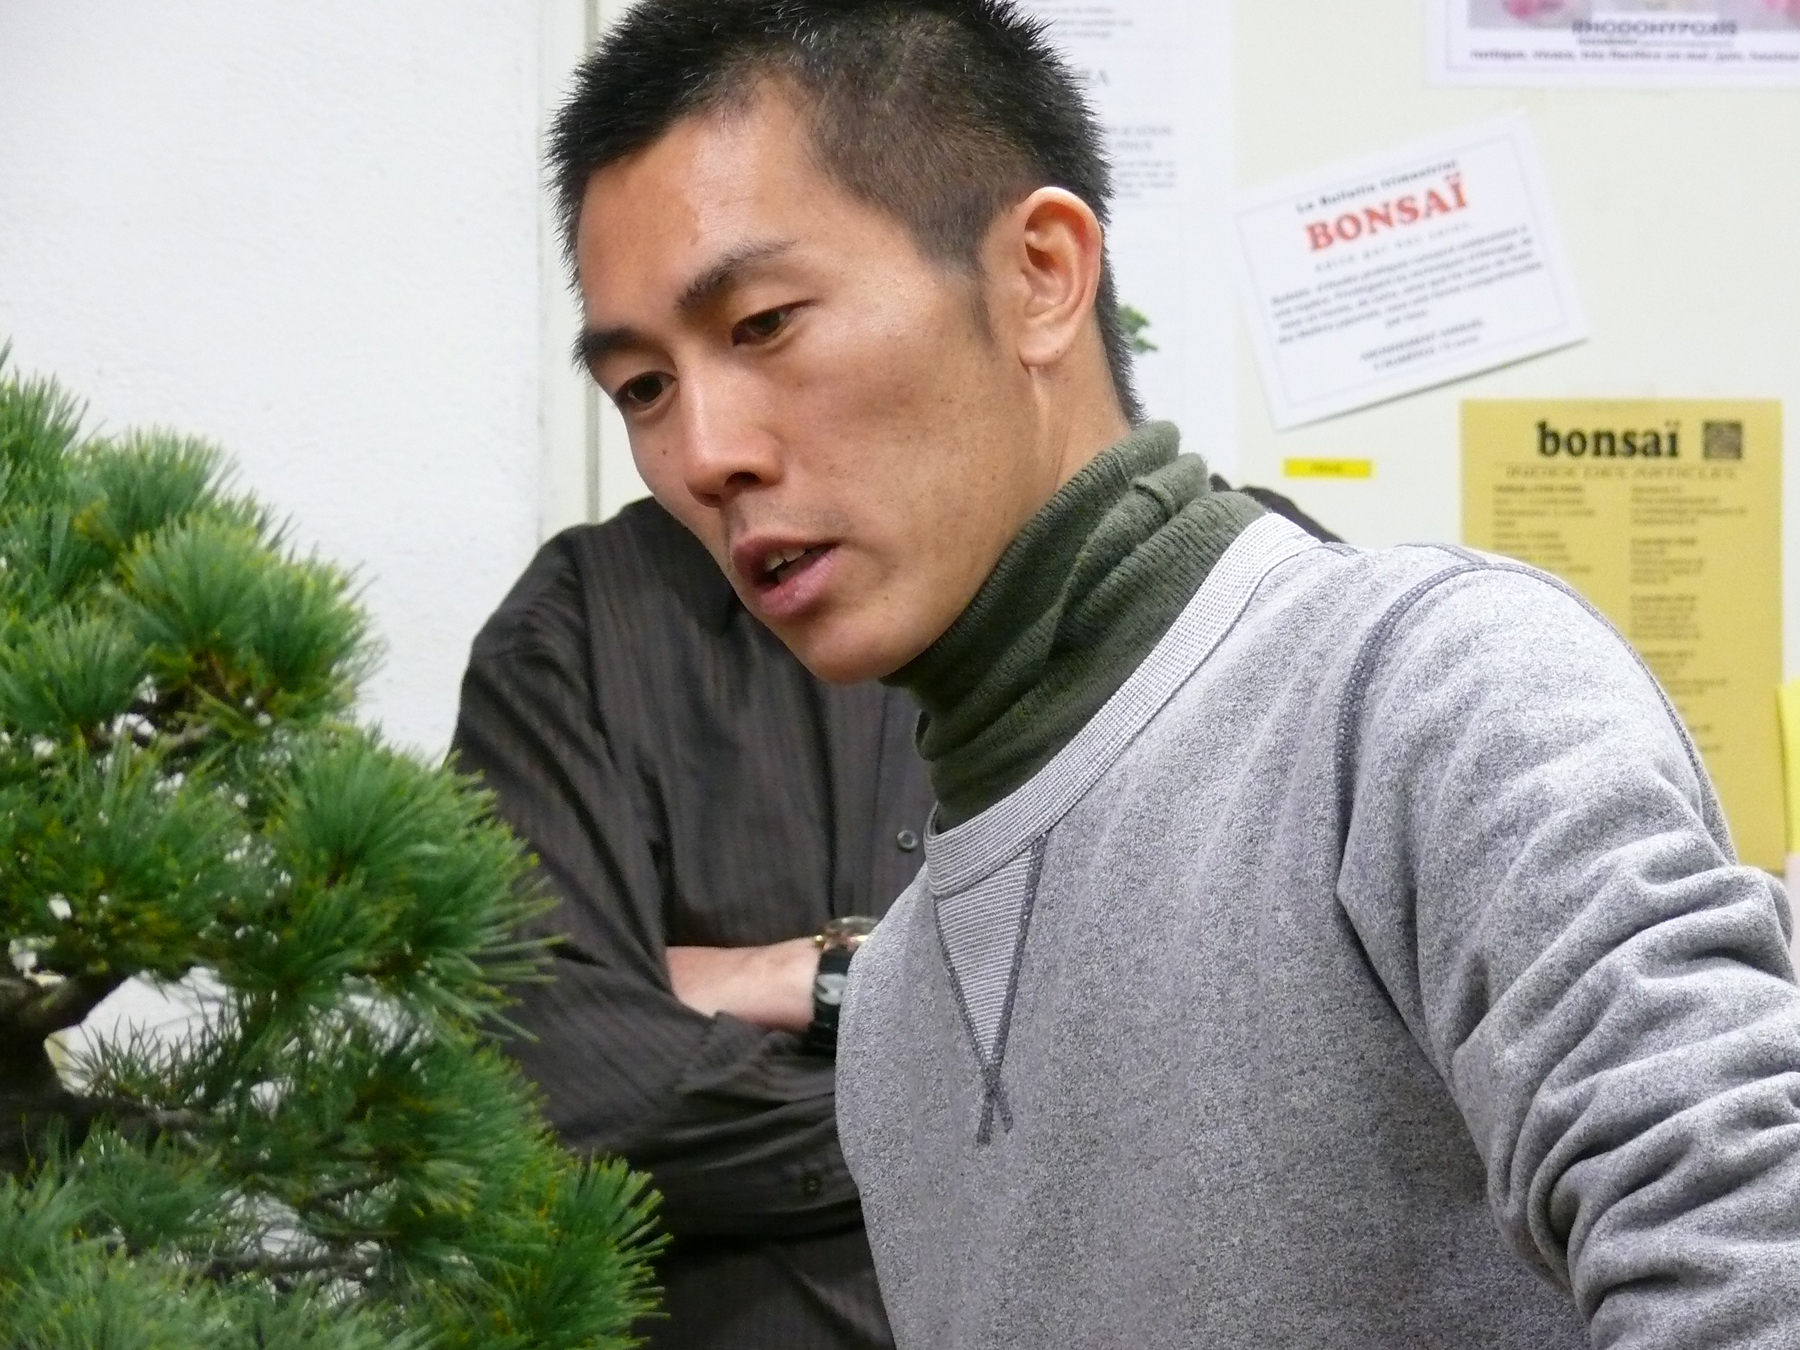 Shiino Kentaro, le plus jeune maitre bonsai du Japon